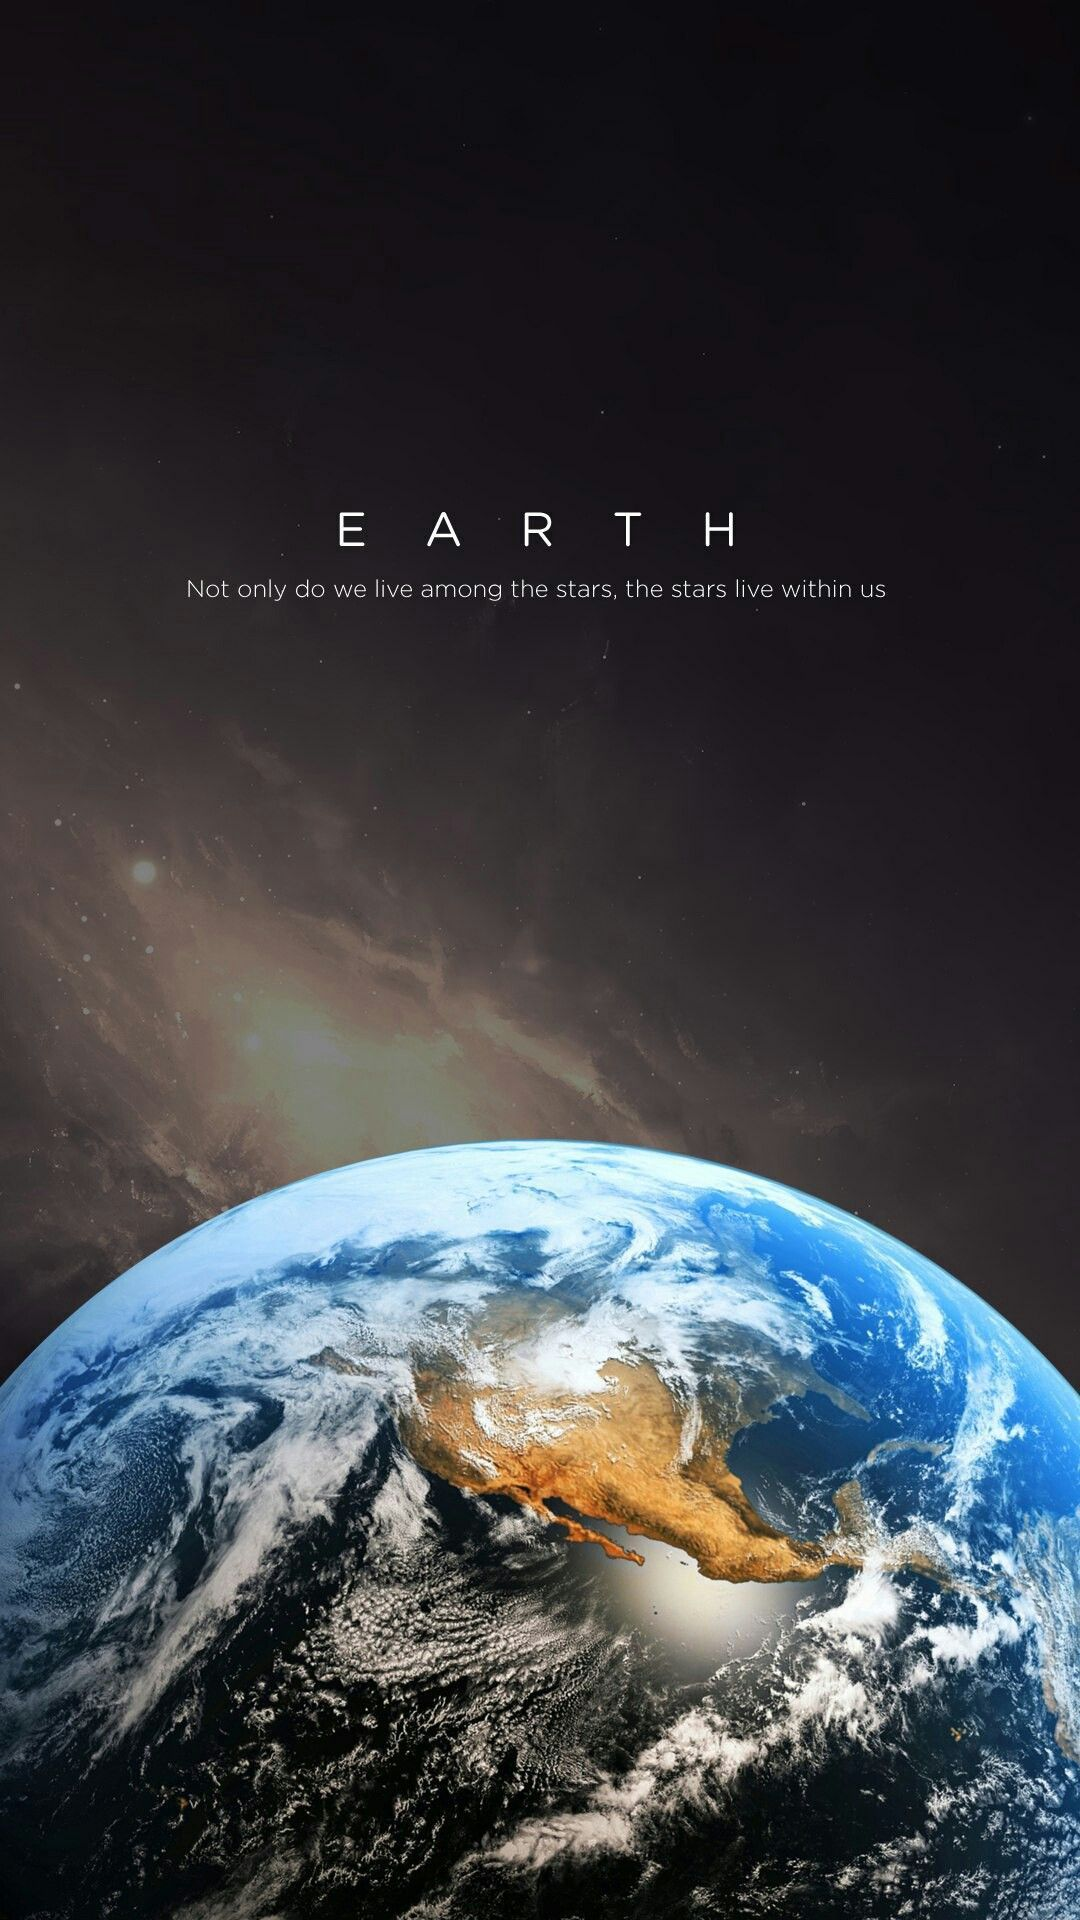 Not Only Do We Live In The Stars But The Stars Live Among Us In 2020 Wallpaper Earth Planets Wallpaper Nasa Wallpaper